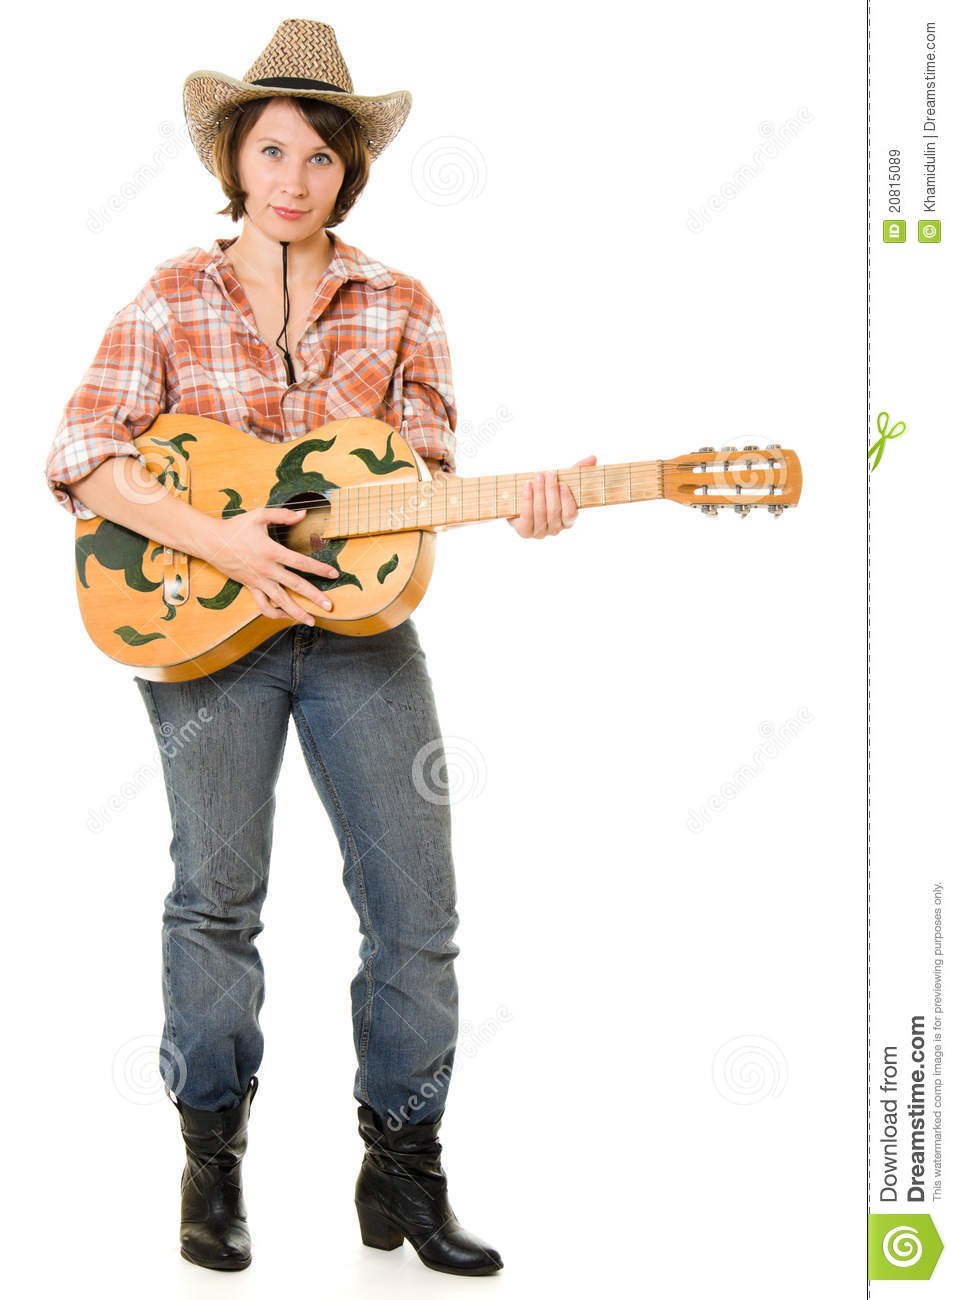 Image Result For Royalty Free Music Western